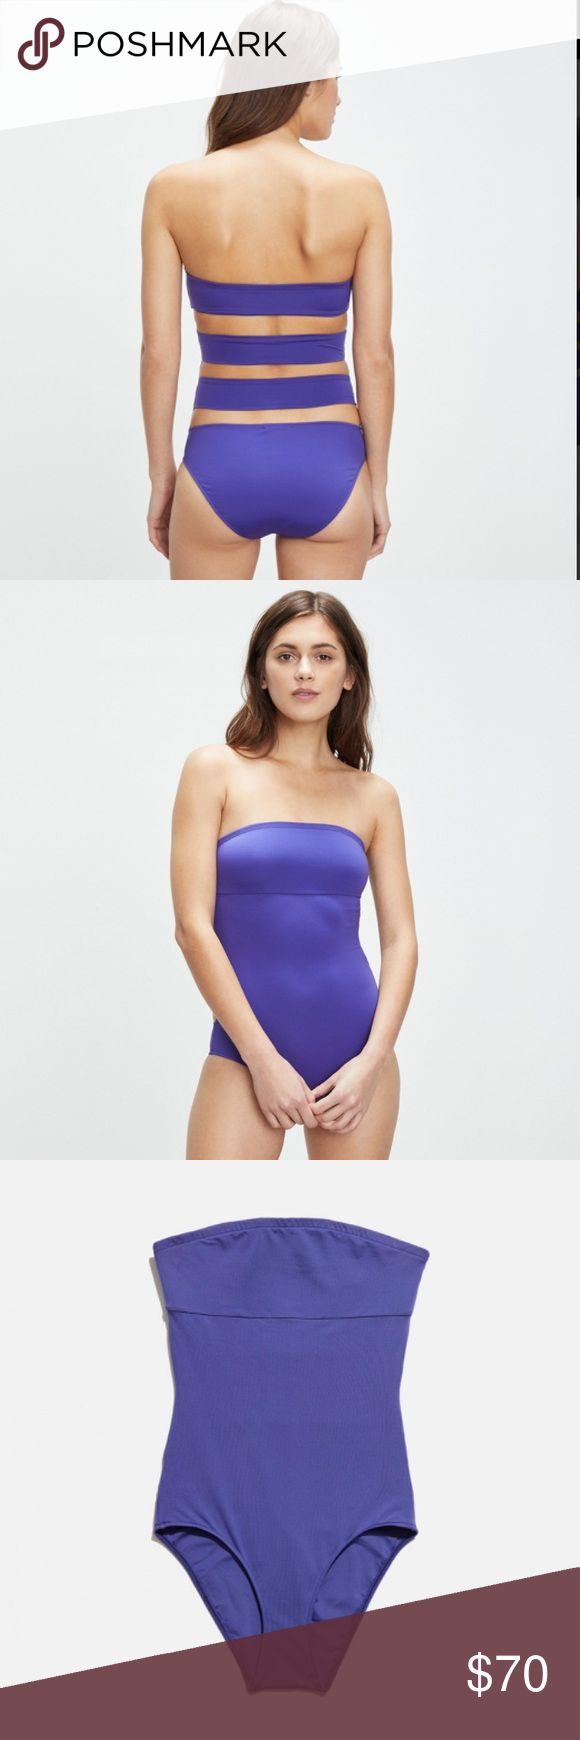 Onia Allie one piece bathing suit size Small swim Purple one piece with cut out band in the back, strapless. New with tag, retail $150 from Onia. Silicone lining inside to keep bathing suit in place. Onia Swim One Pieces